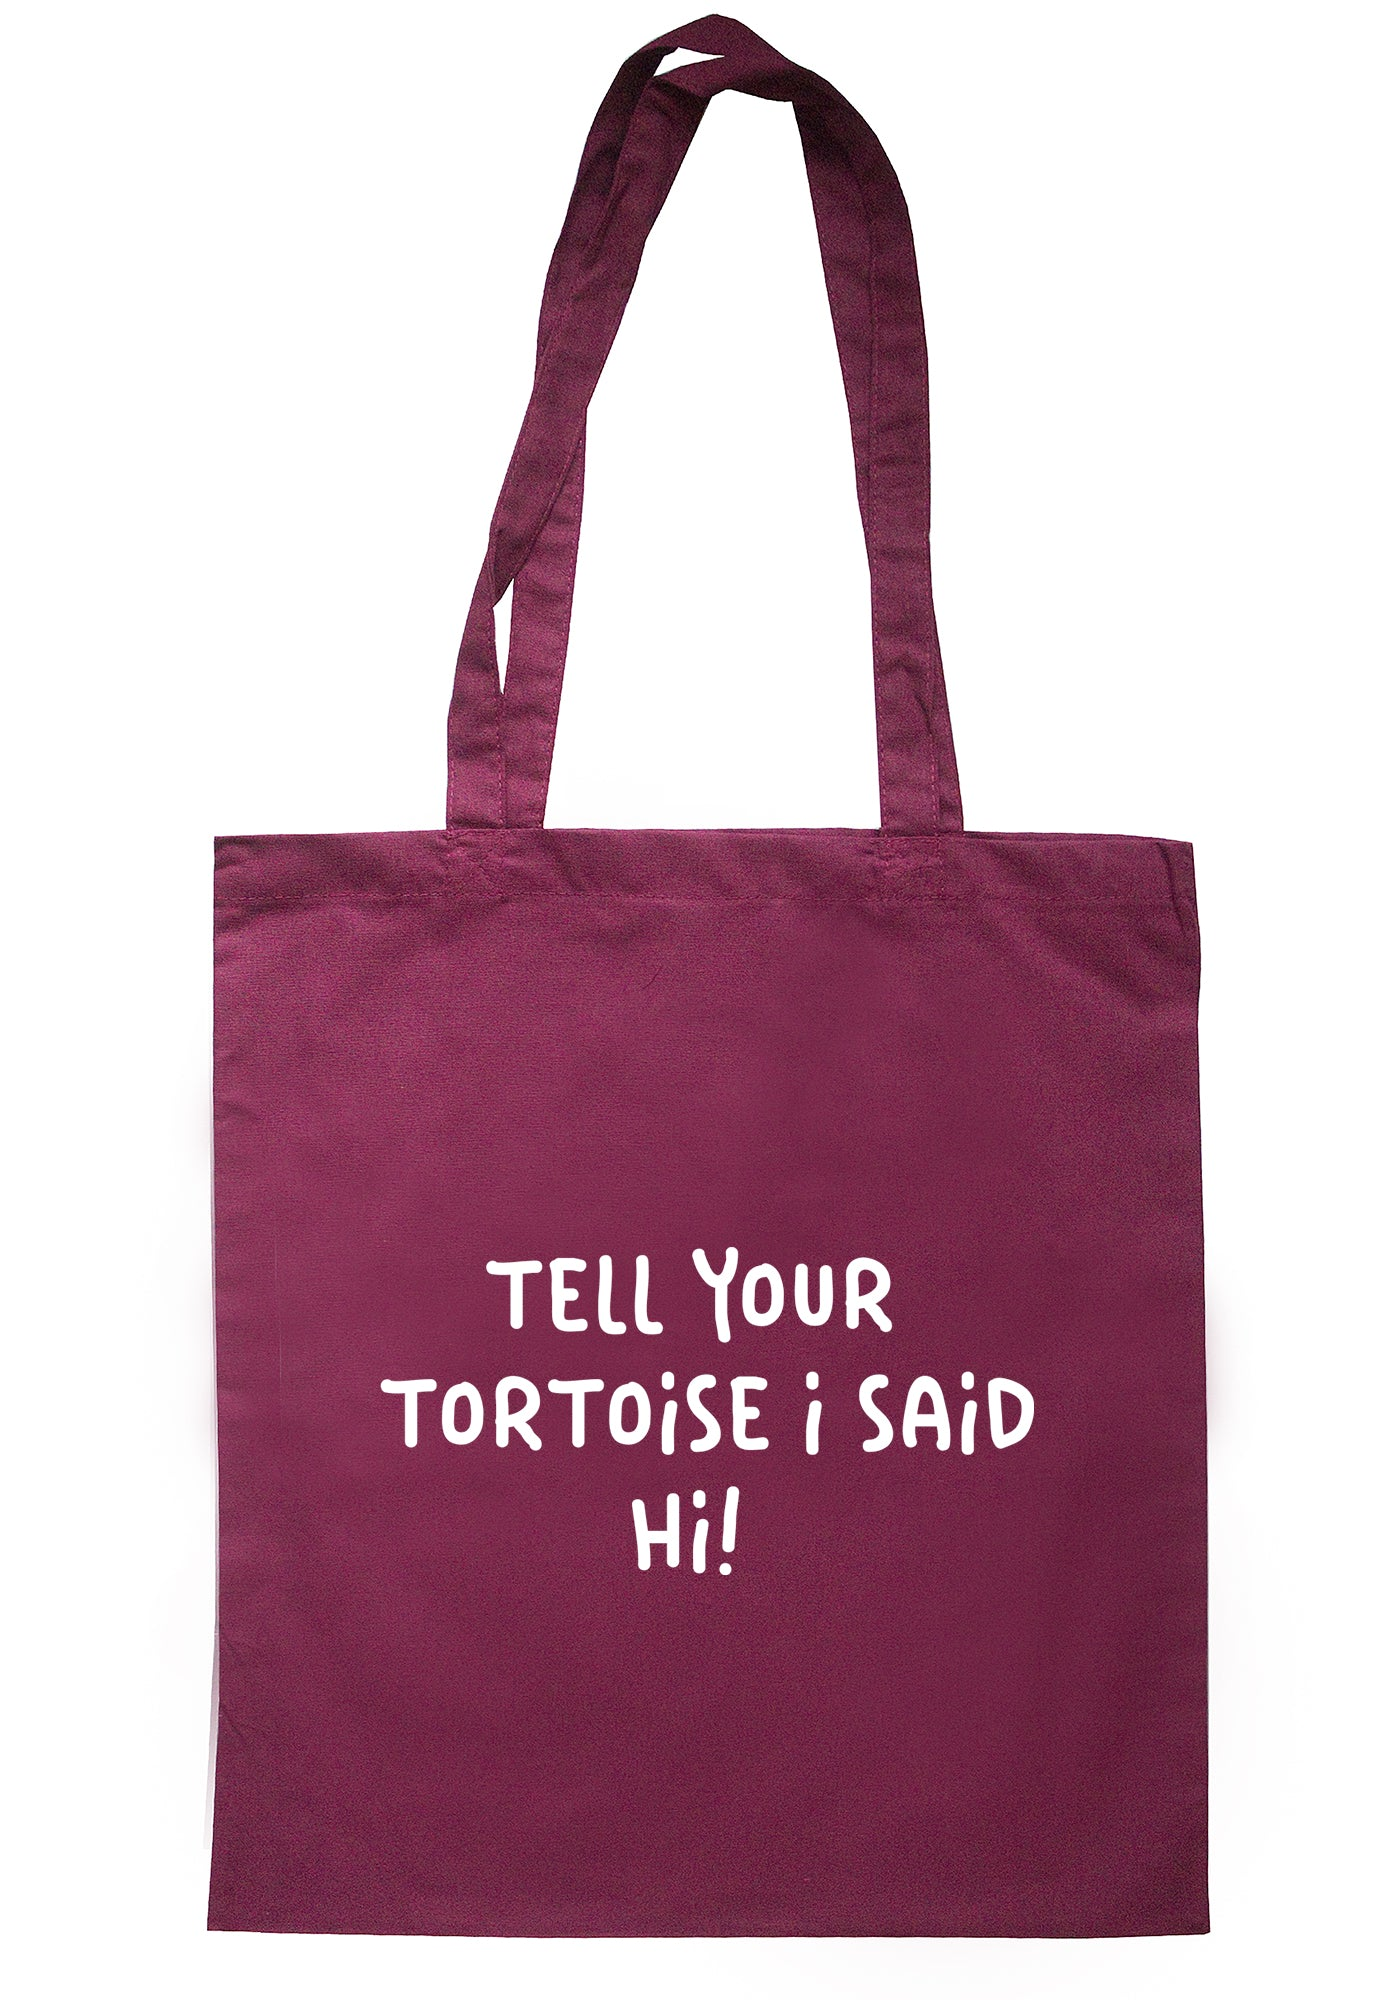 Tell Your Tortoise I Said Hi! Tote Bag S1190